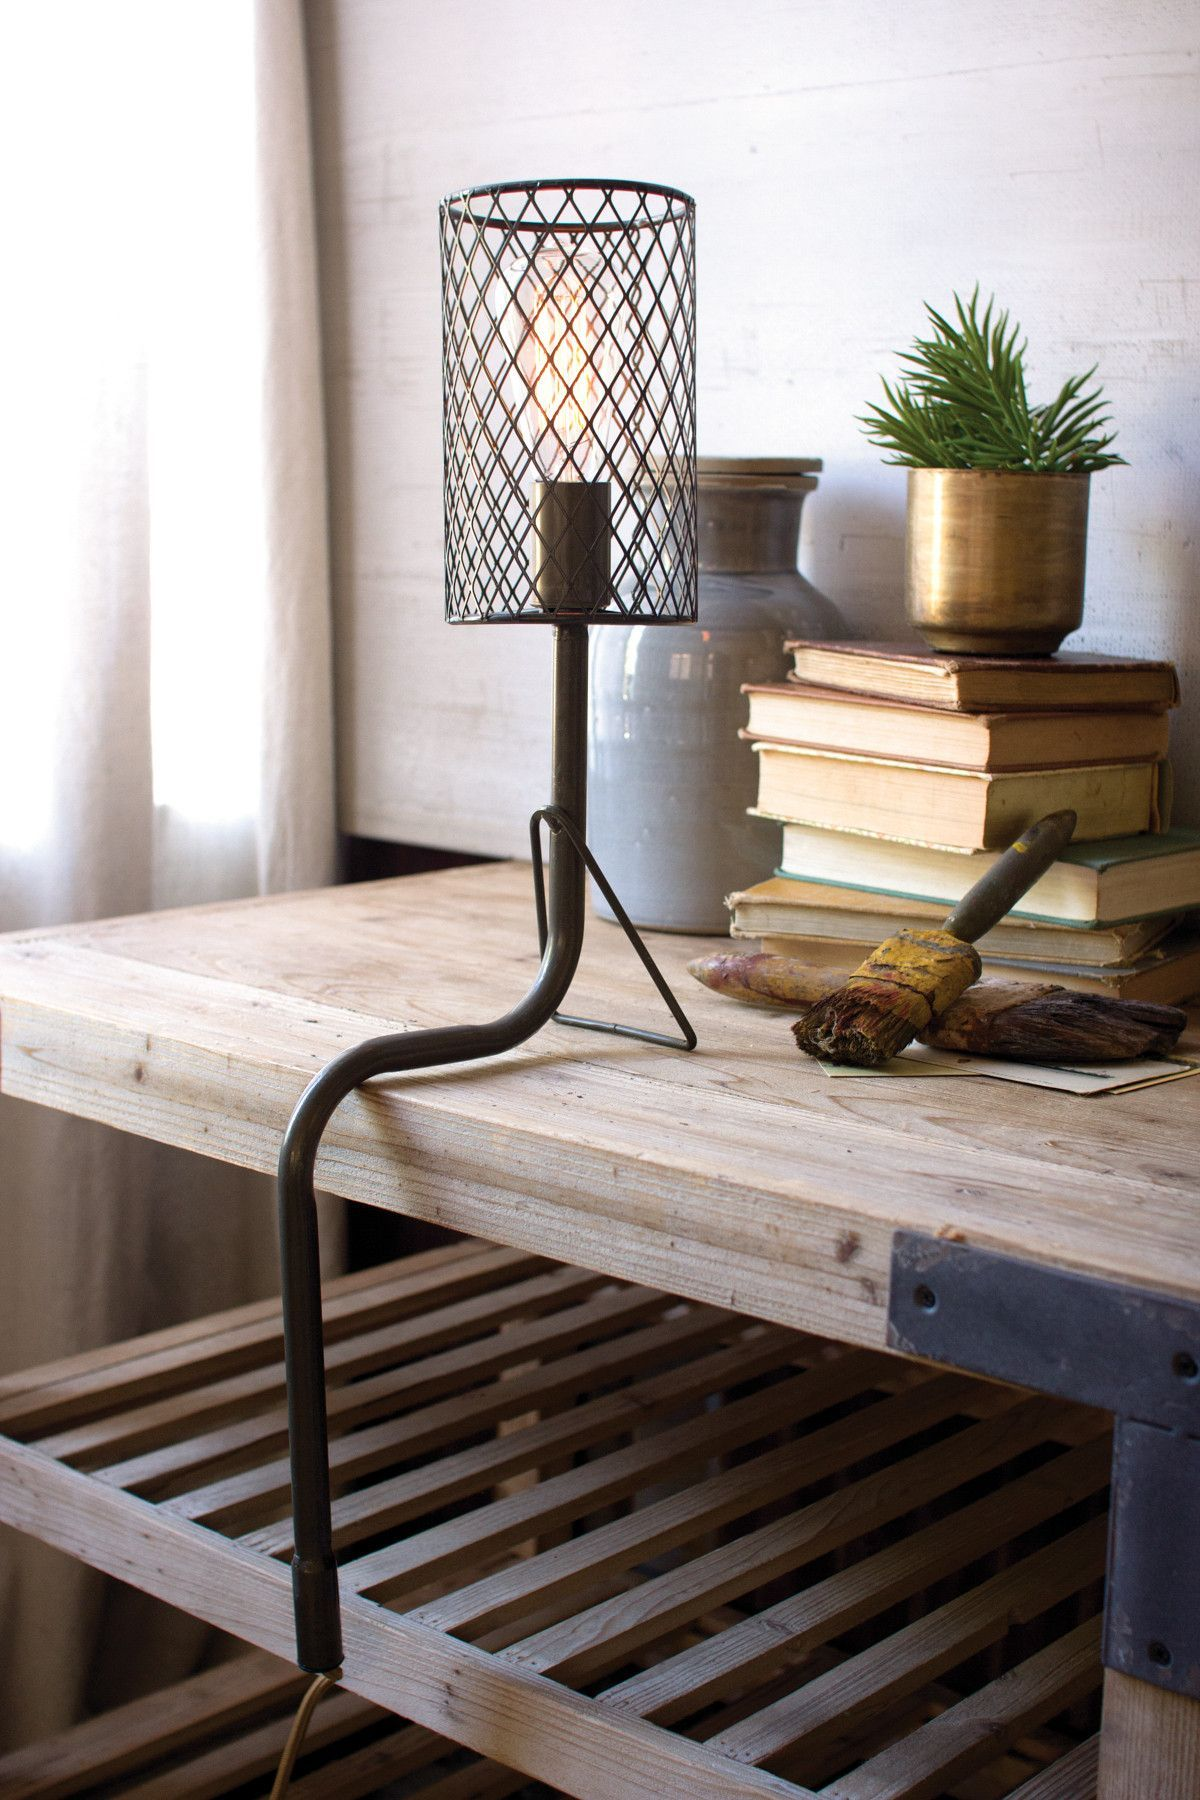 Metal desk lamp with wire mesh shade l m g pinterest metal kalalou metal desk lamp with wire mesh shade allows you to indulge in your favorite book perfect way to relax after a long working day keyboard keysfo Image collections